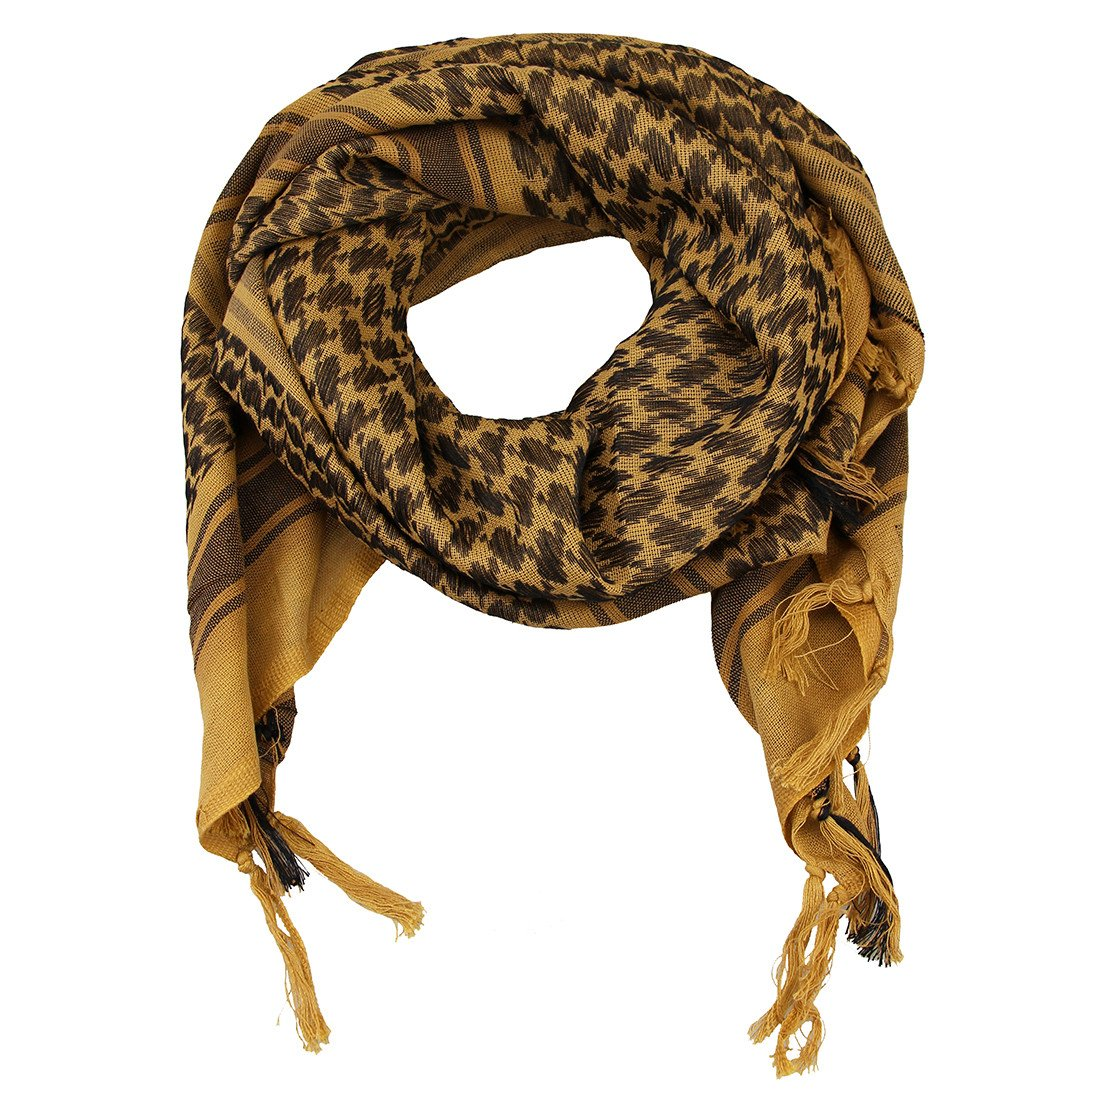 100% Cotton Tactical Shemagh Military Desert Arab Keffiyeh Shawl Head Neck Scarf Wrap For Men Women